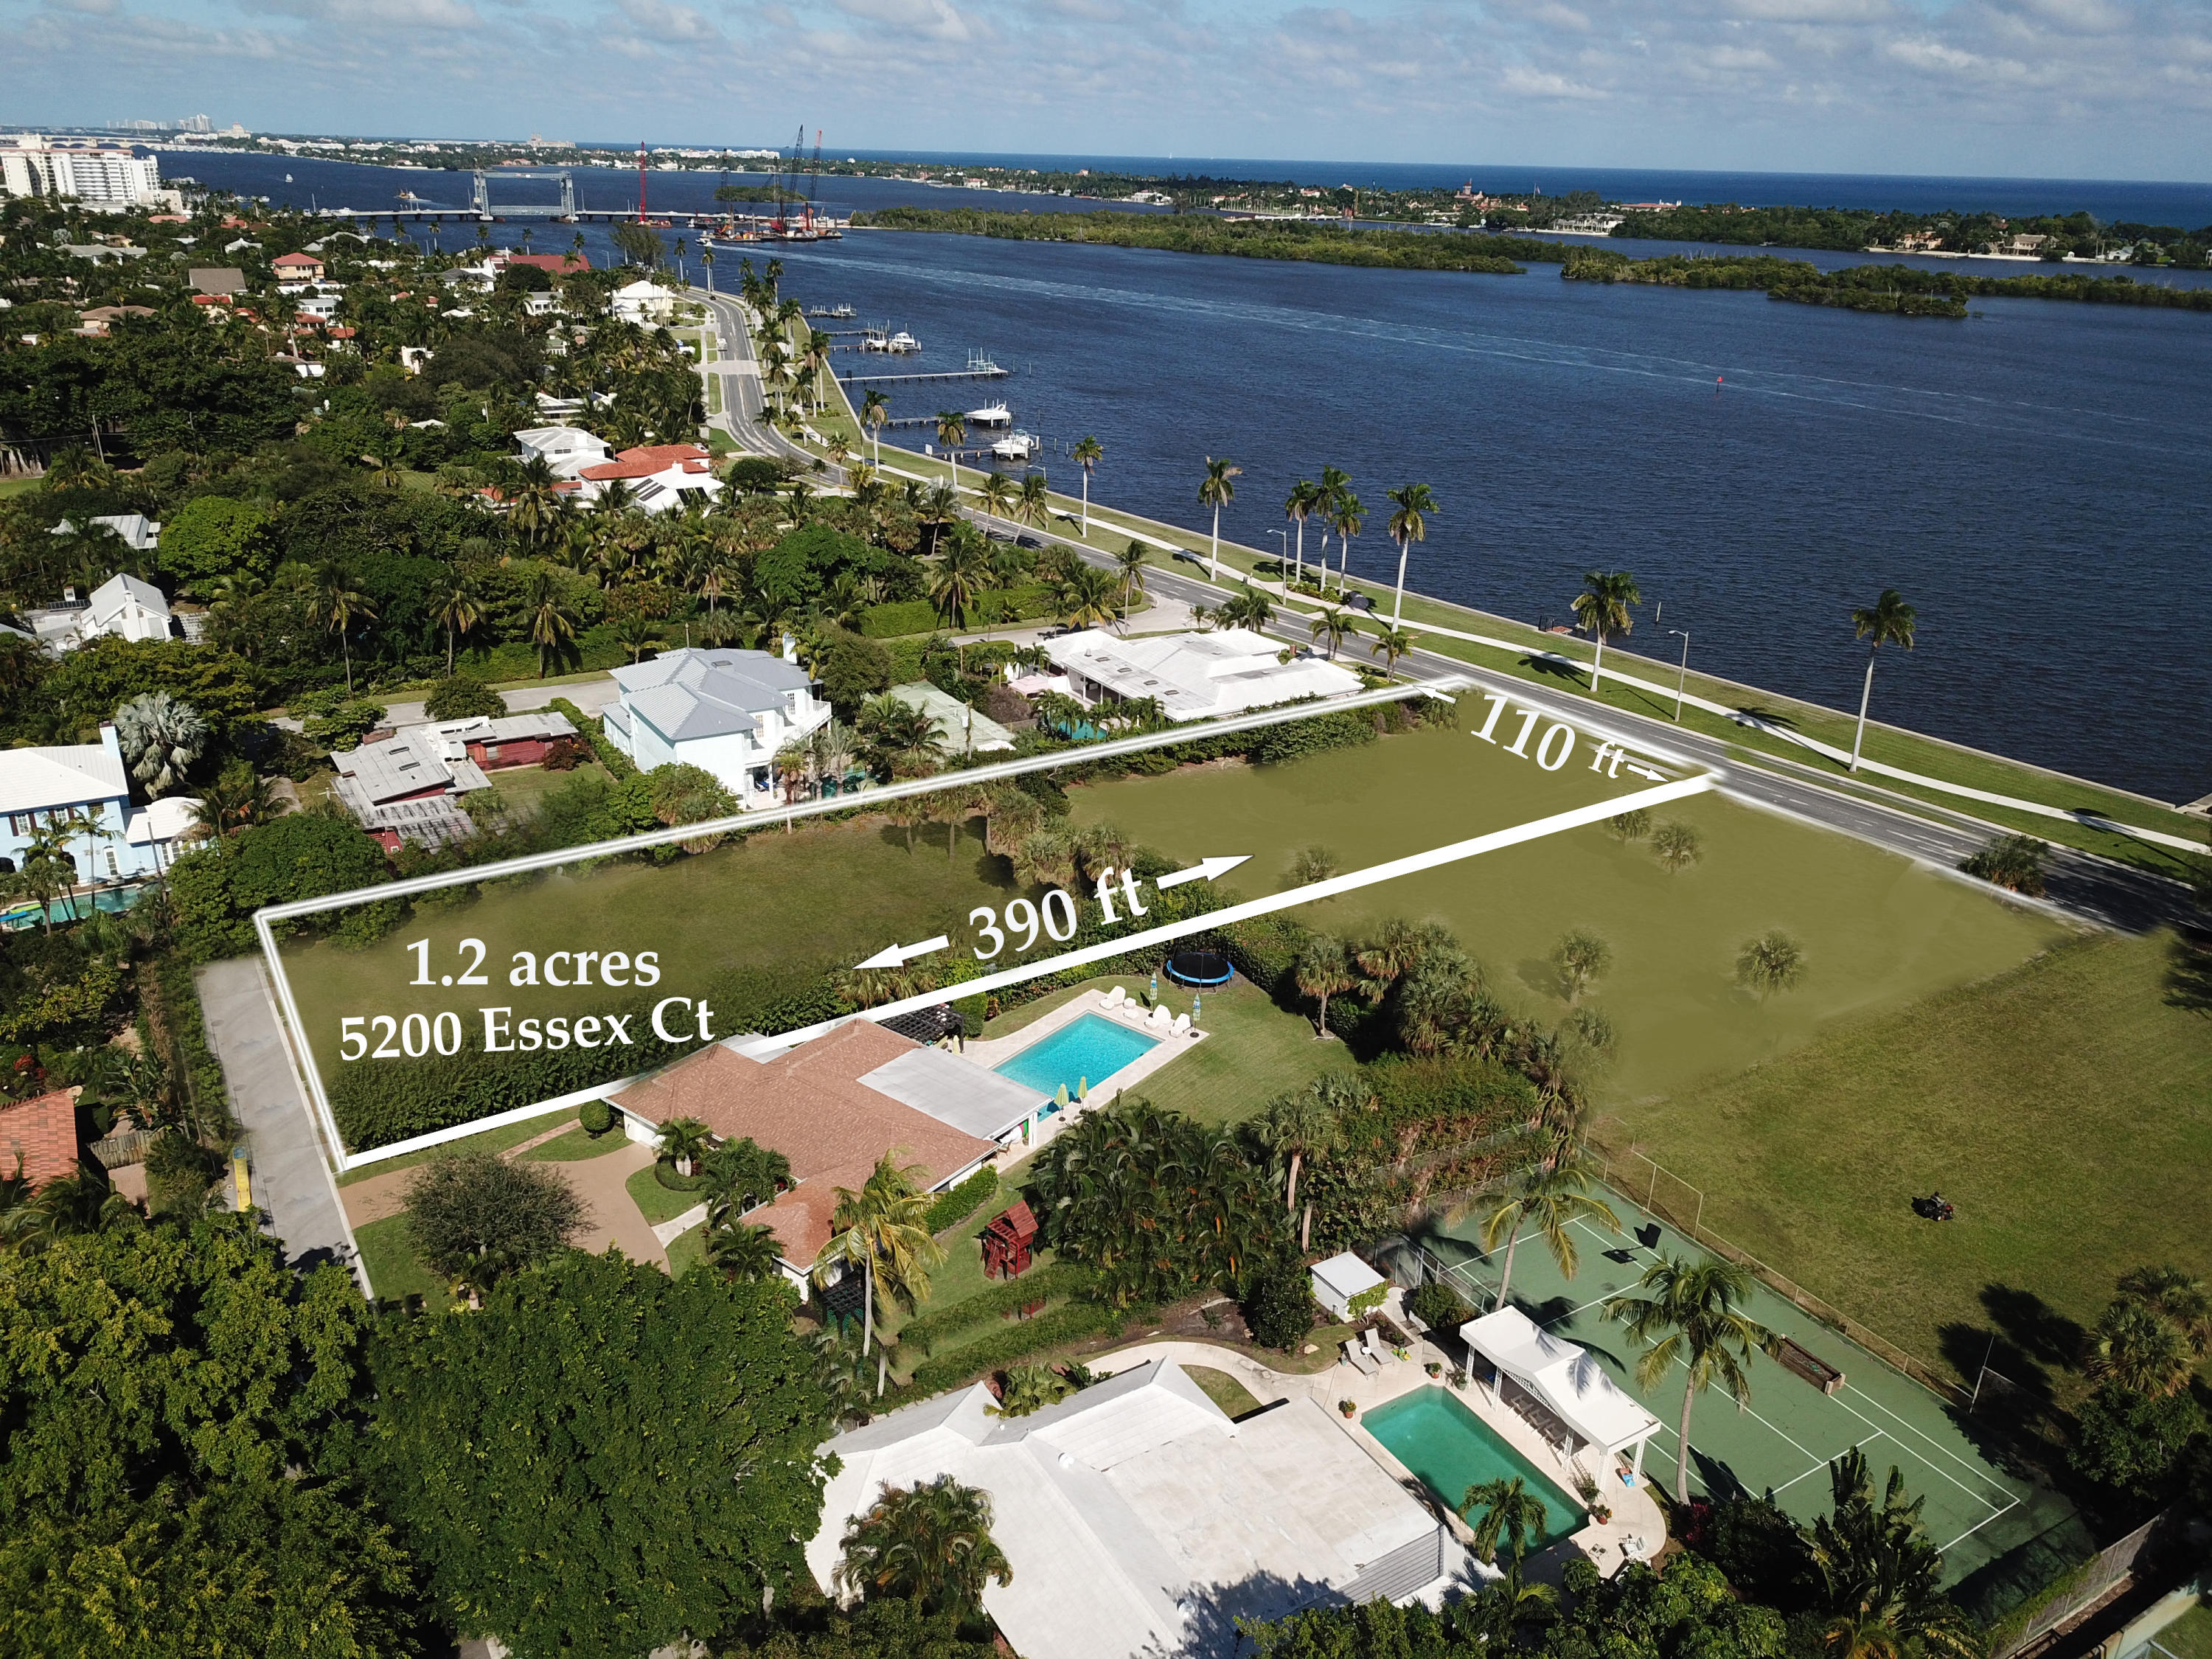 5200 Essex Court, West Palm Beach, Florida 33405, 3 Bedrooms Bedrooms, ,2 BathroomsBathrooms,Single Family,For Sale,Essex,RX-10522542